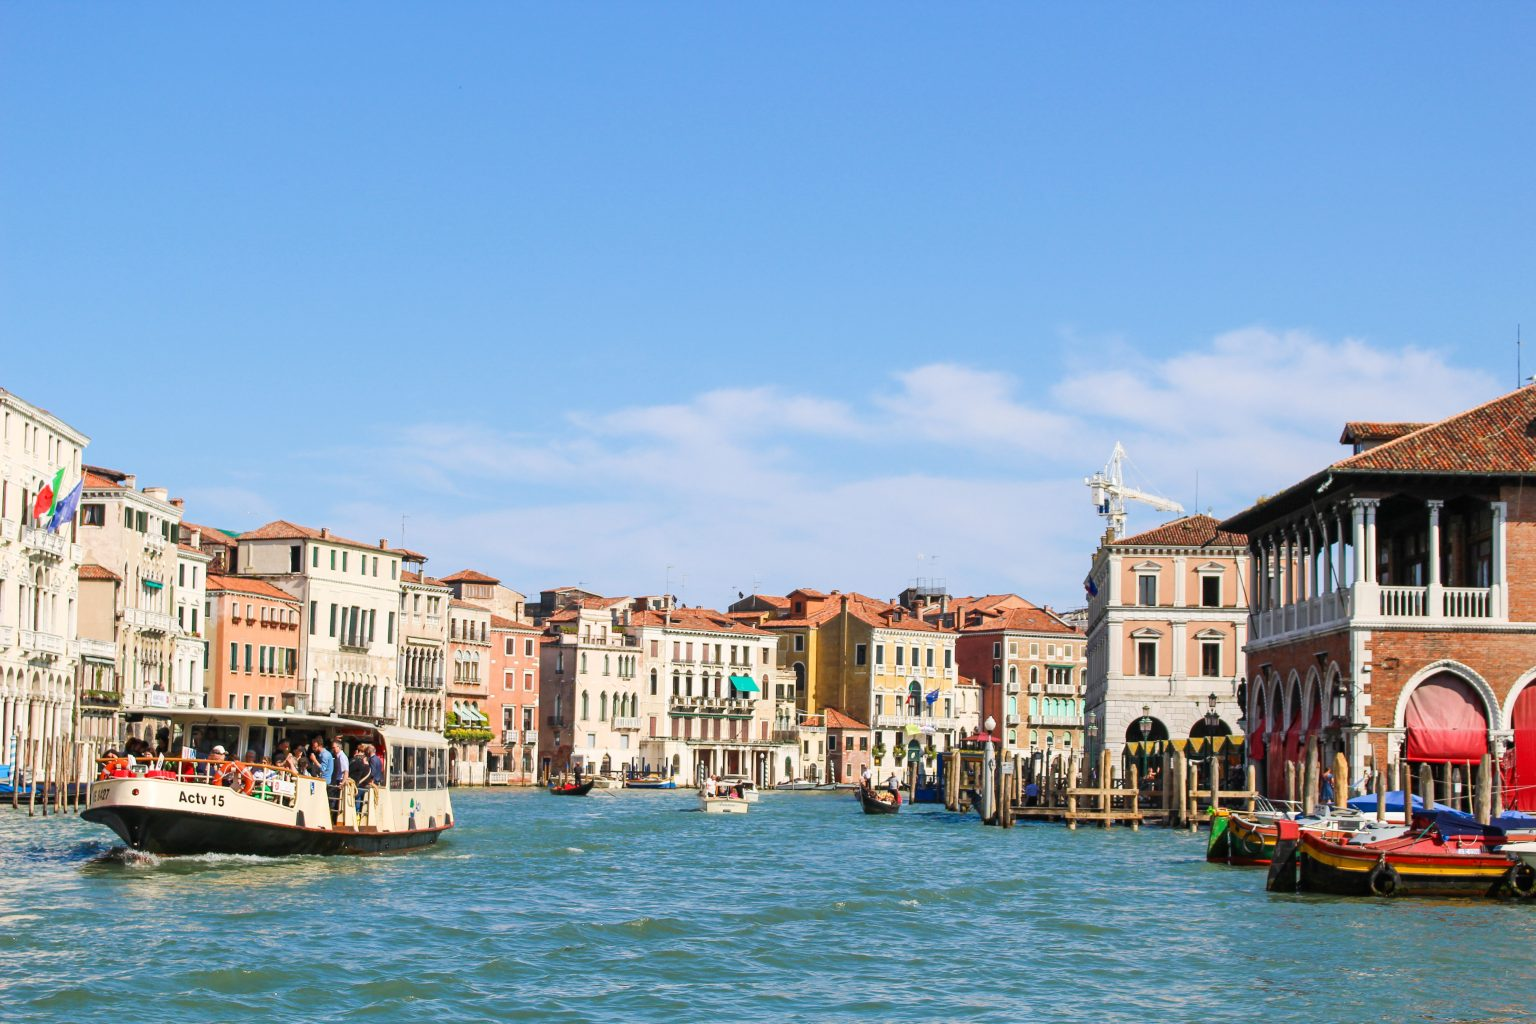 Venice; 12 Cities to Celebrate This Christmas